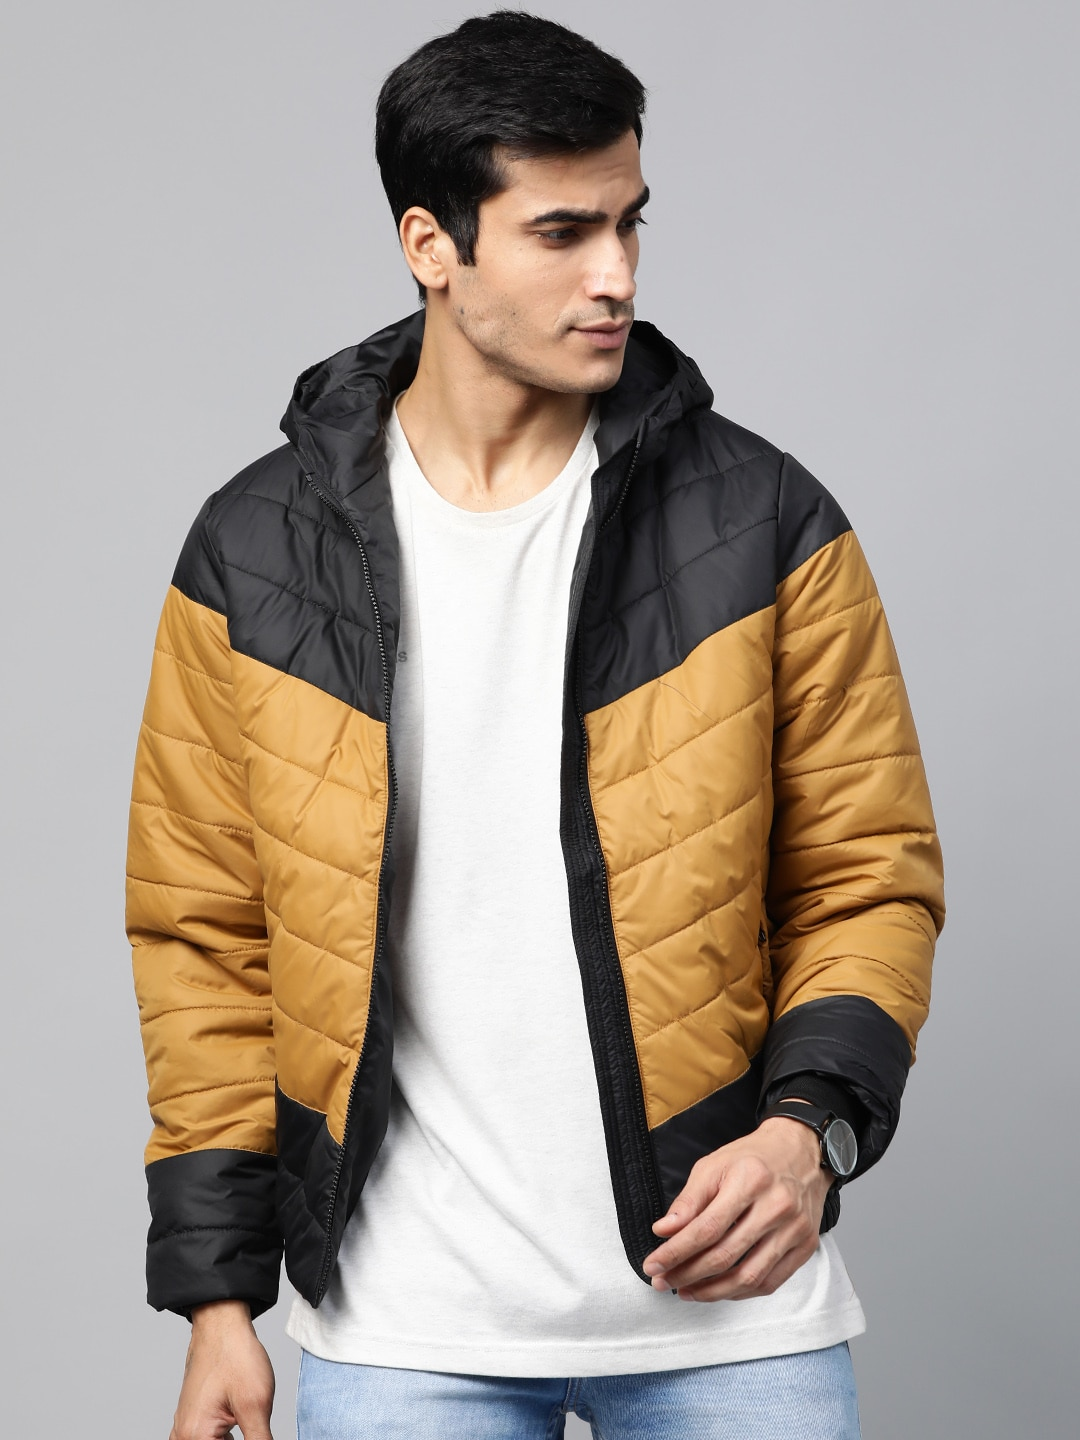 Roadster Men Mustard Yellow & Black Colourblocked Hooded Padded Jacket-12111616